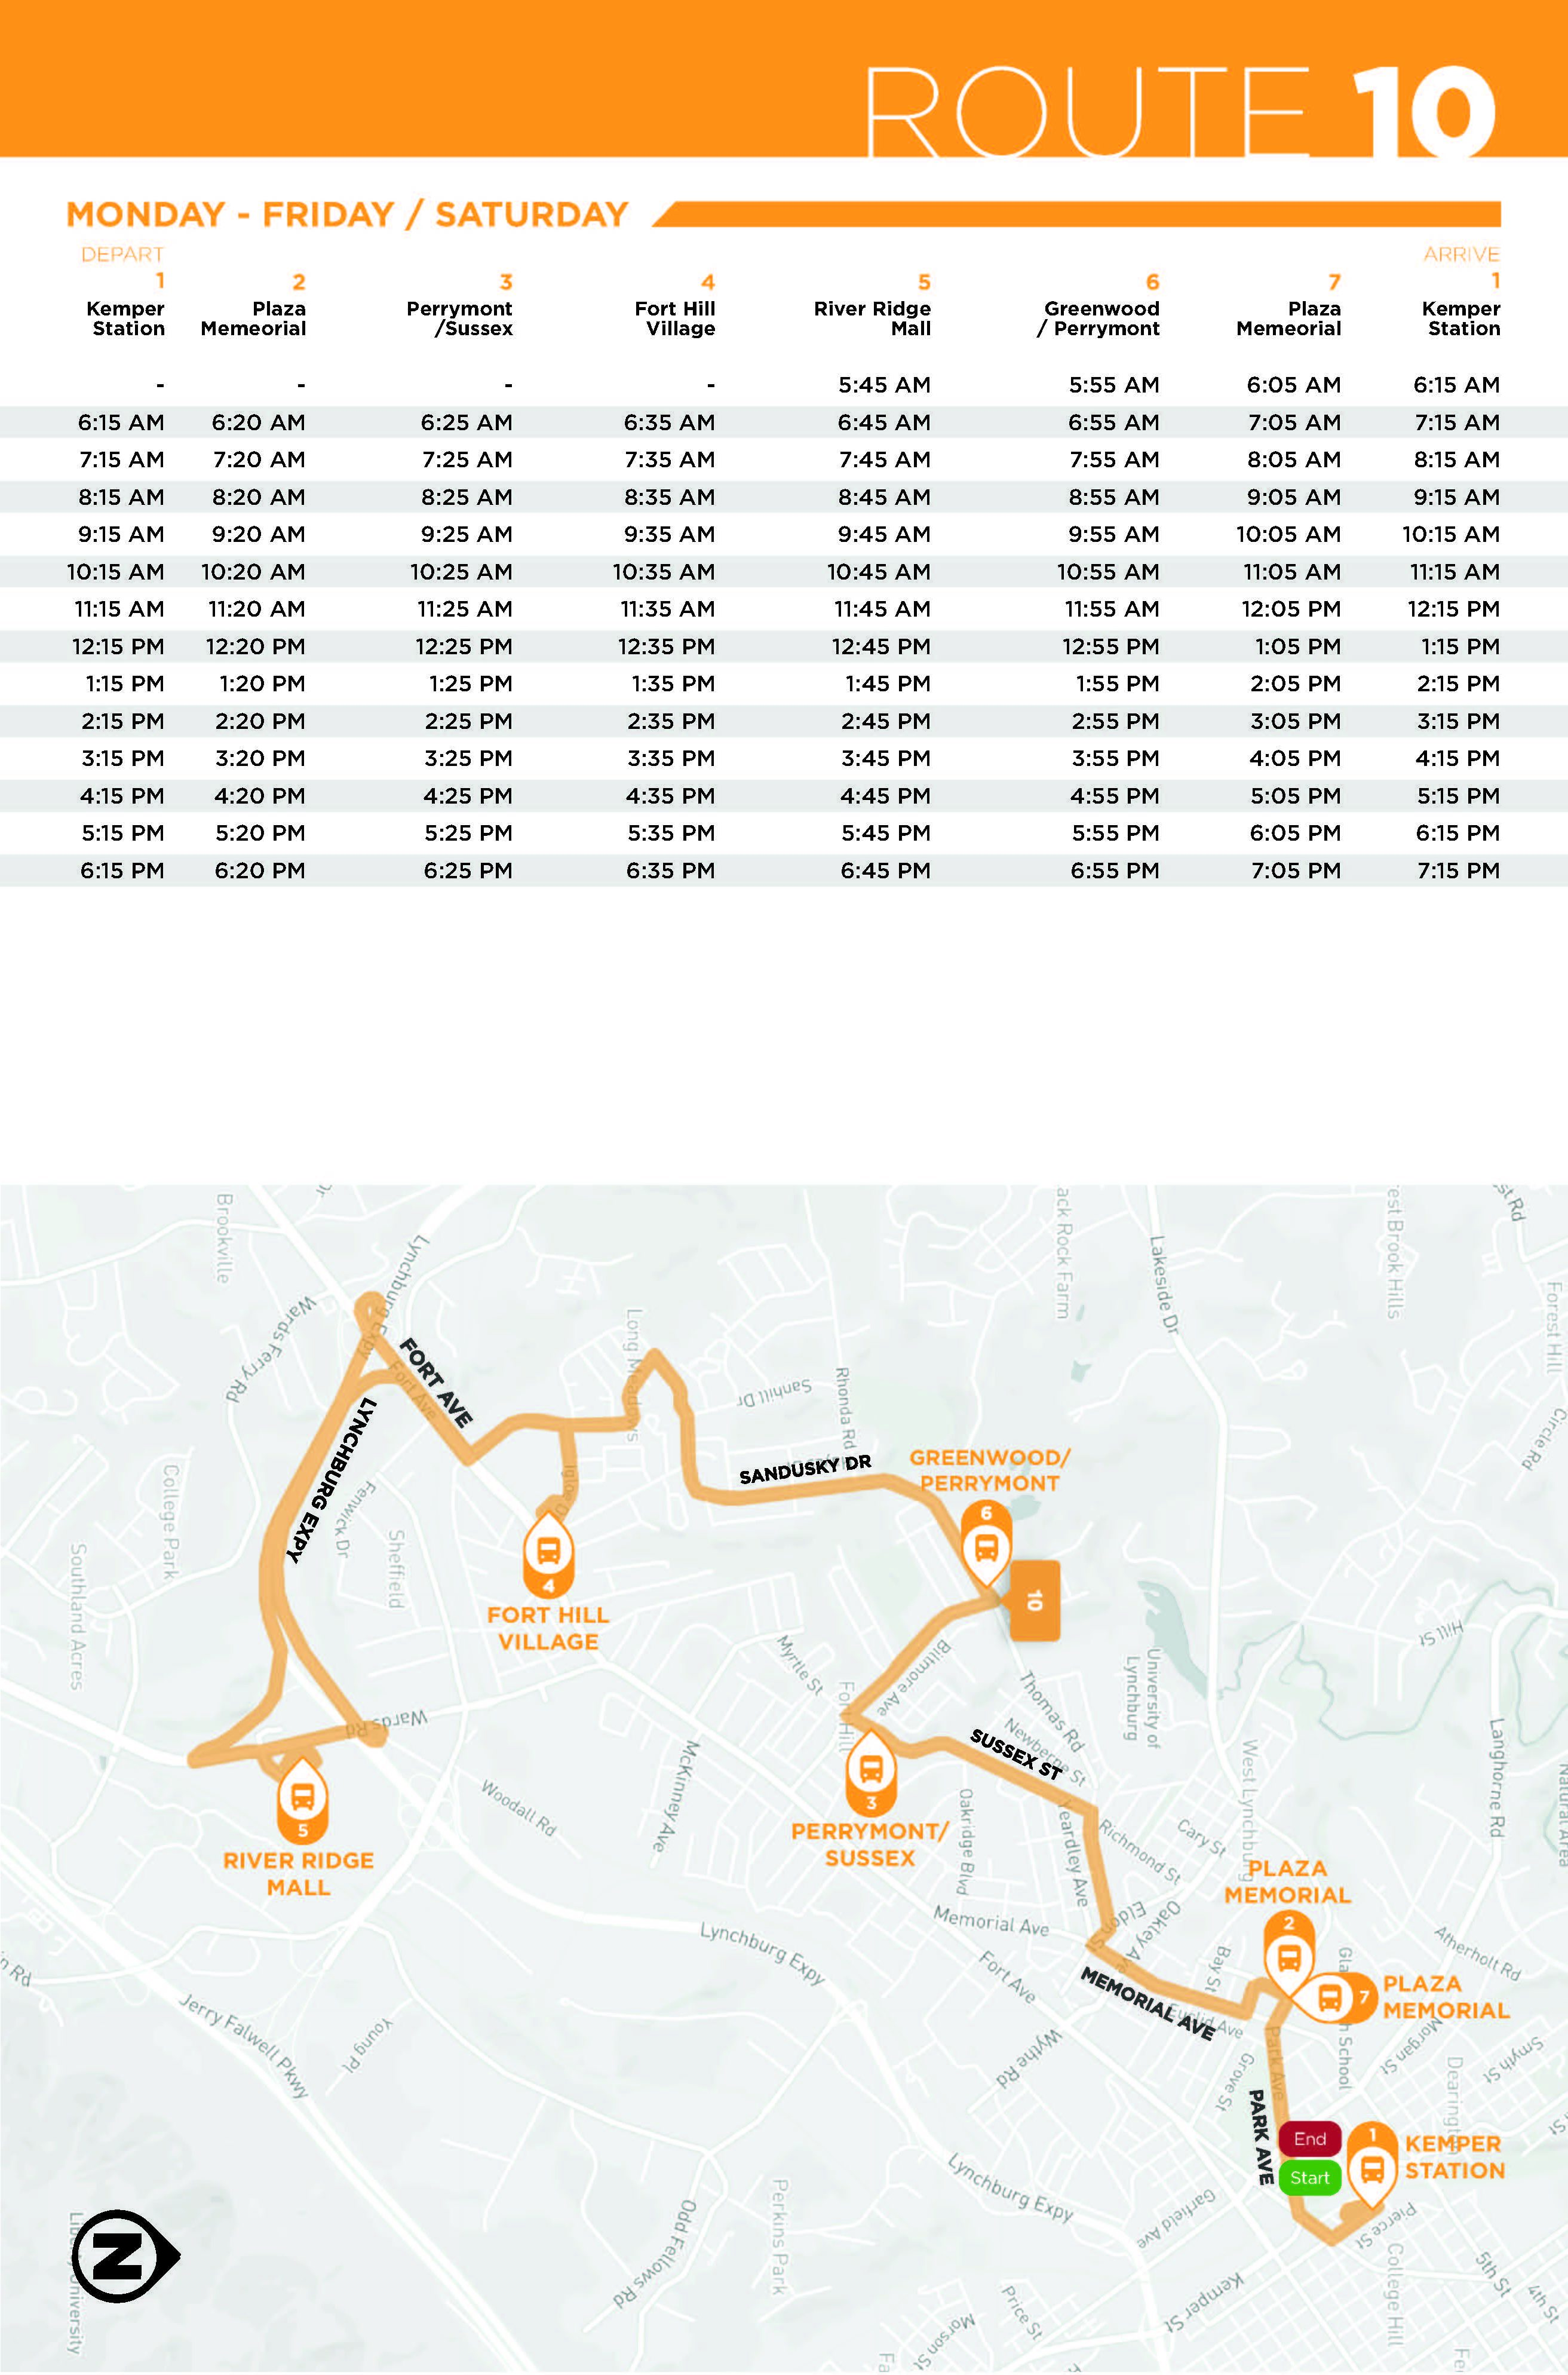 Route 10 Map and Schedule